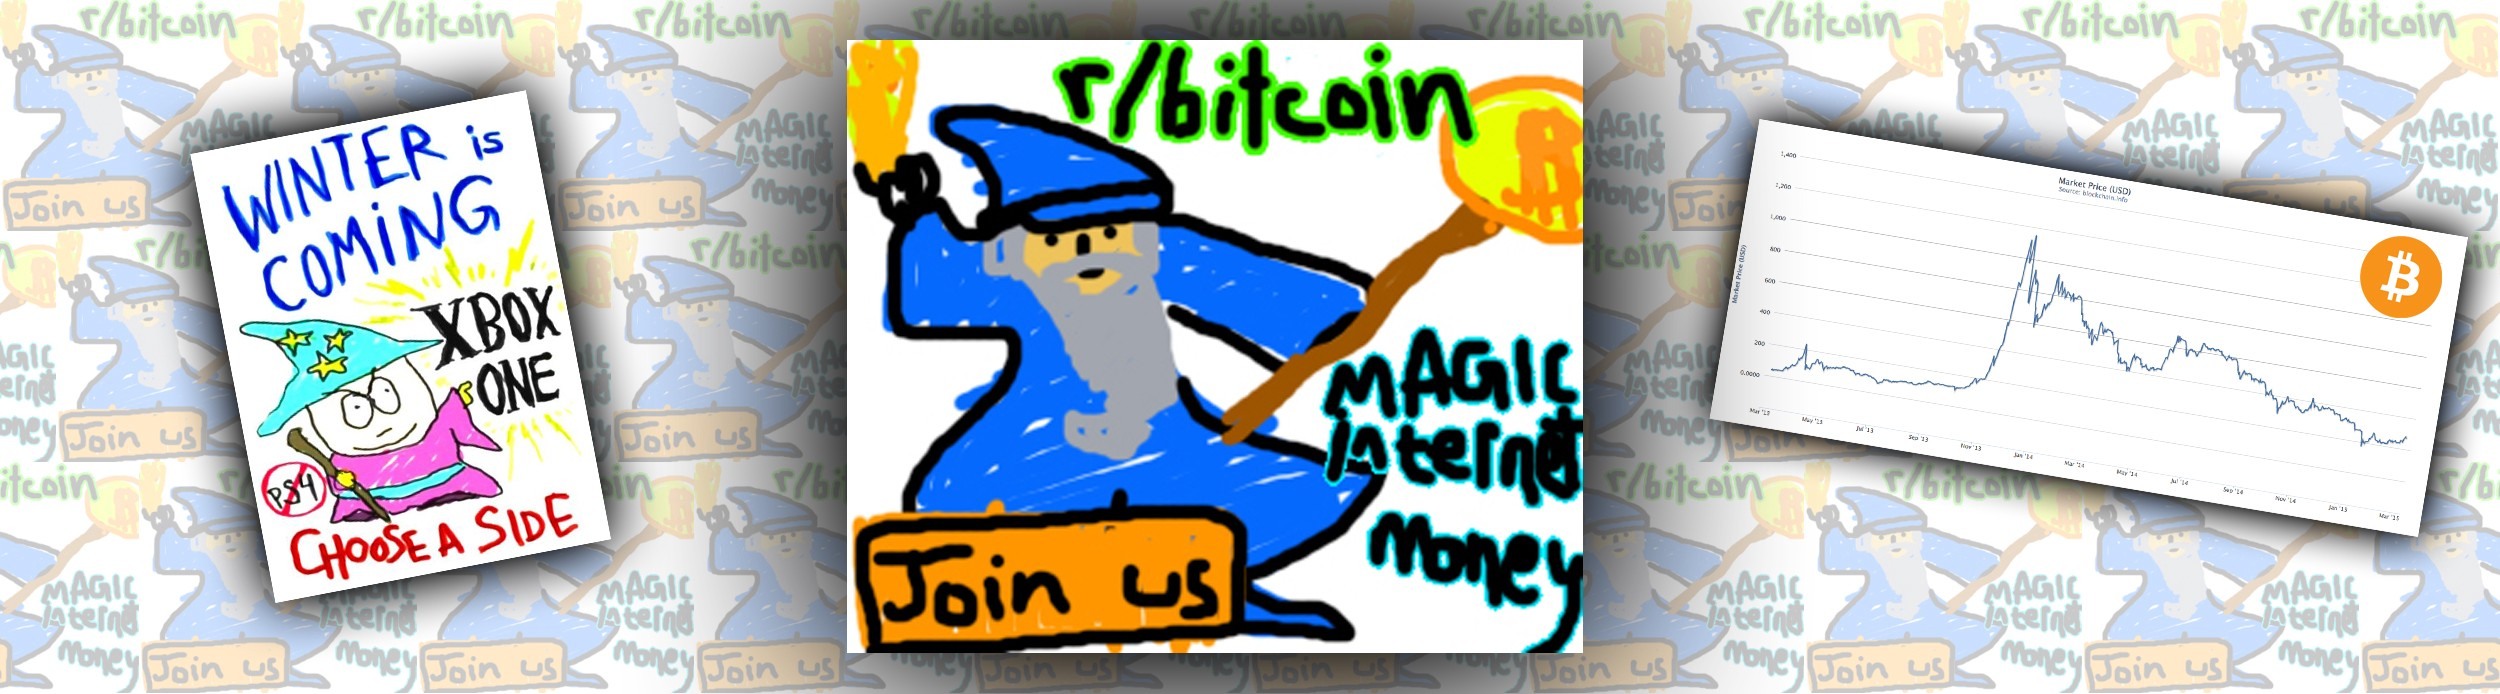 Magic Internet Money How A Reddit Ad Made Bitcoin Hit 1000 And